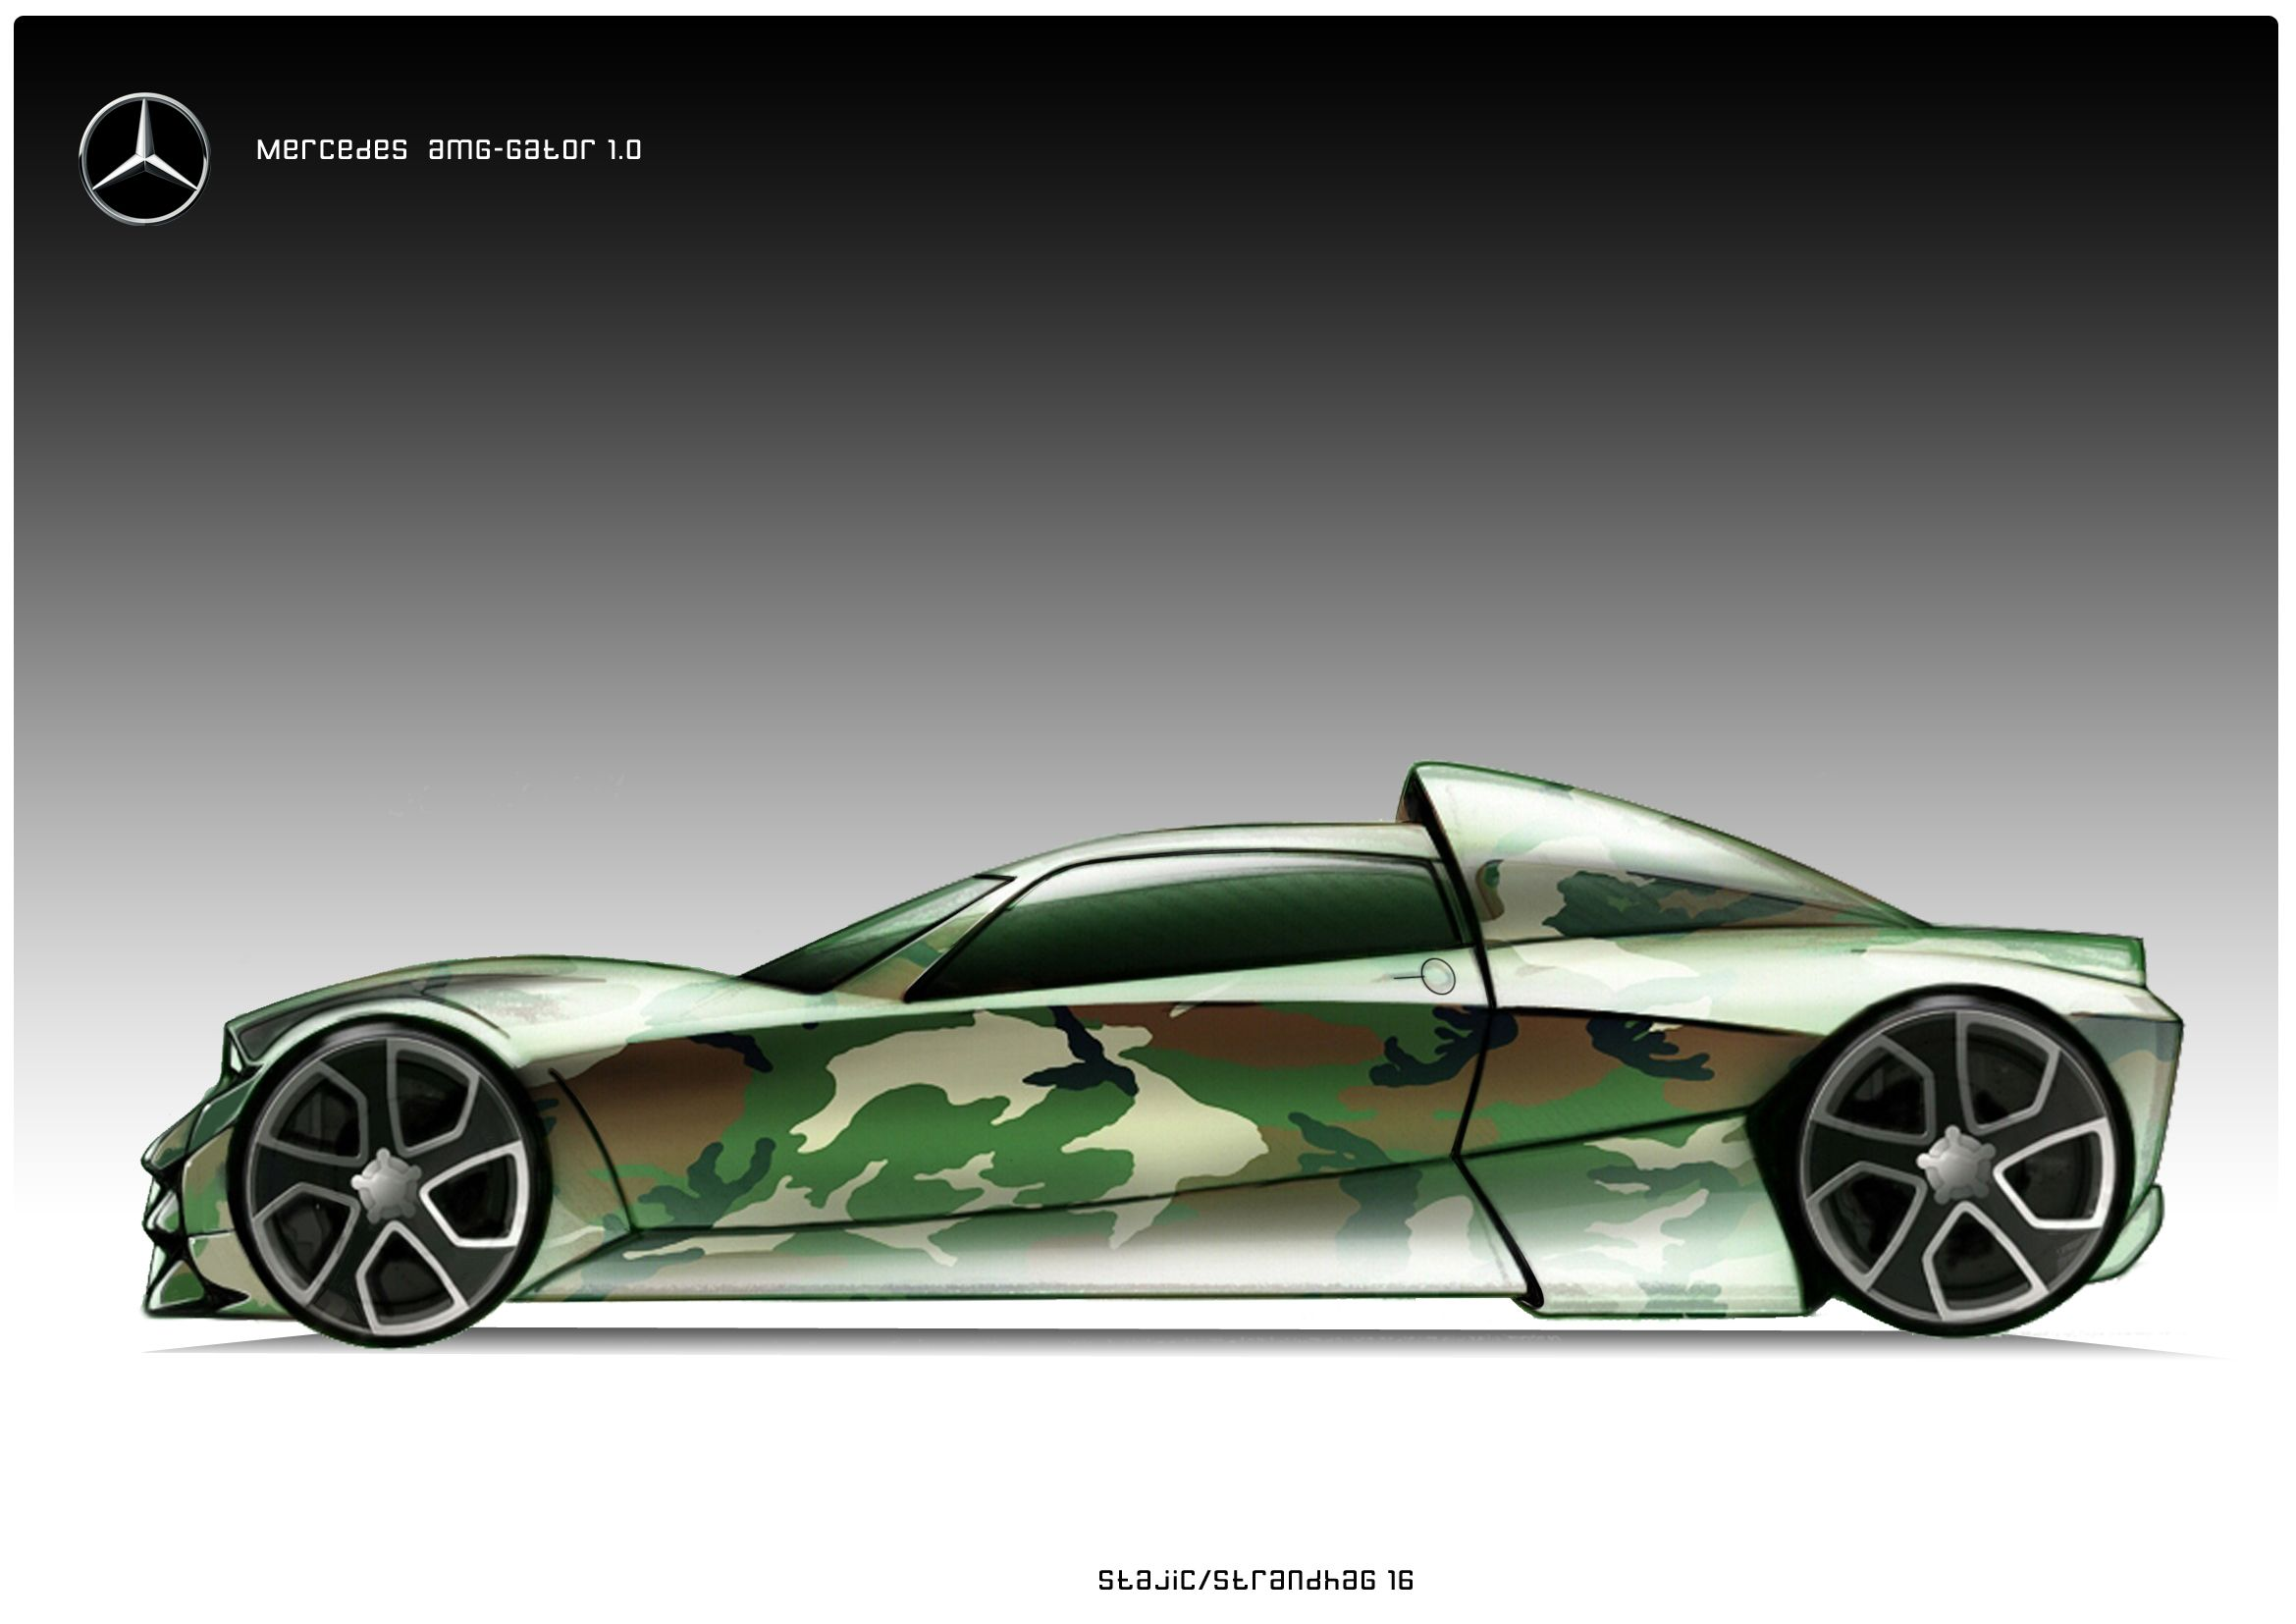 *Motif: Crocodile The 5th CDA Design Competition was held,and we have been showing those entries! The theme was